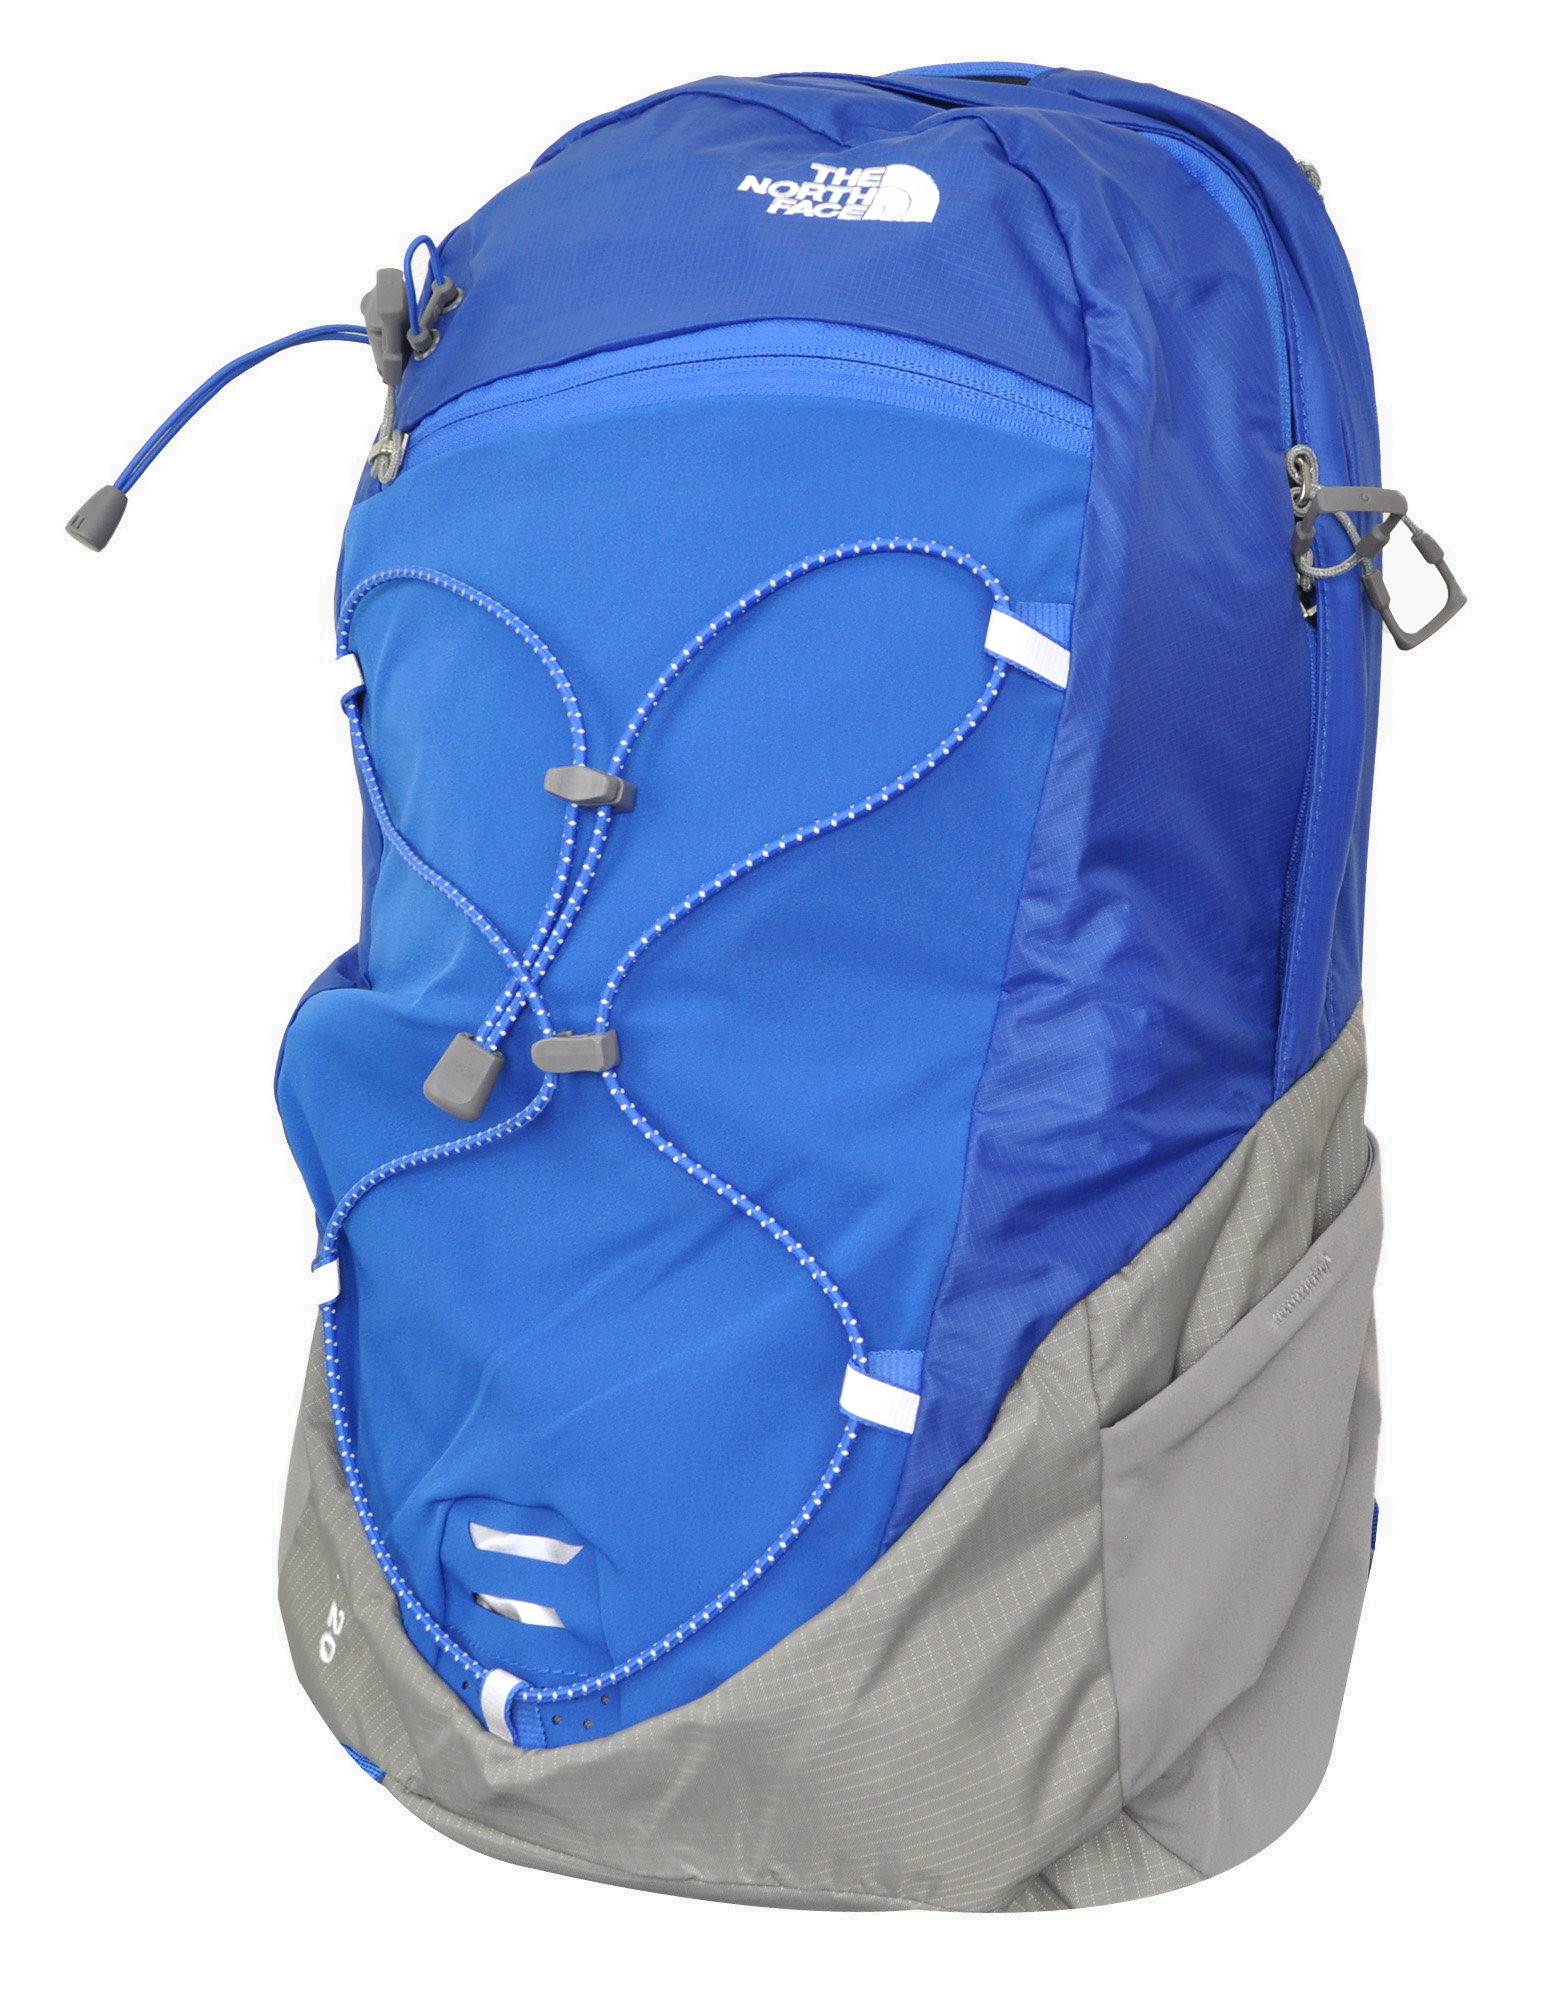 The FacecolorAzul Backpack North De Angstrom 20l vNOm8n0w